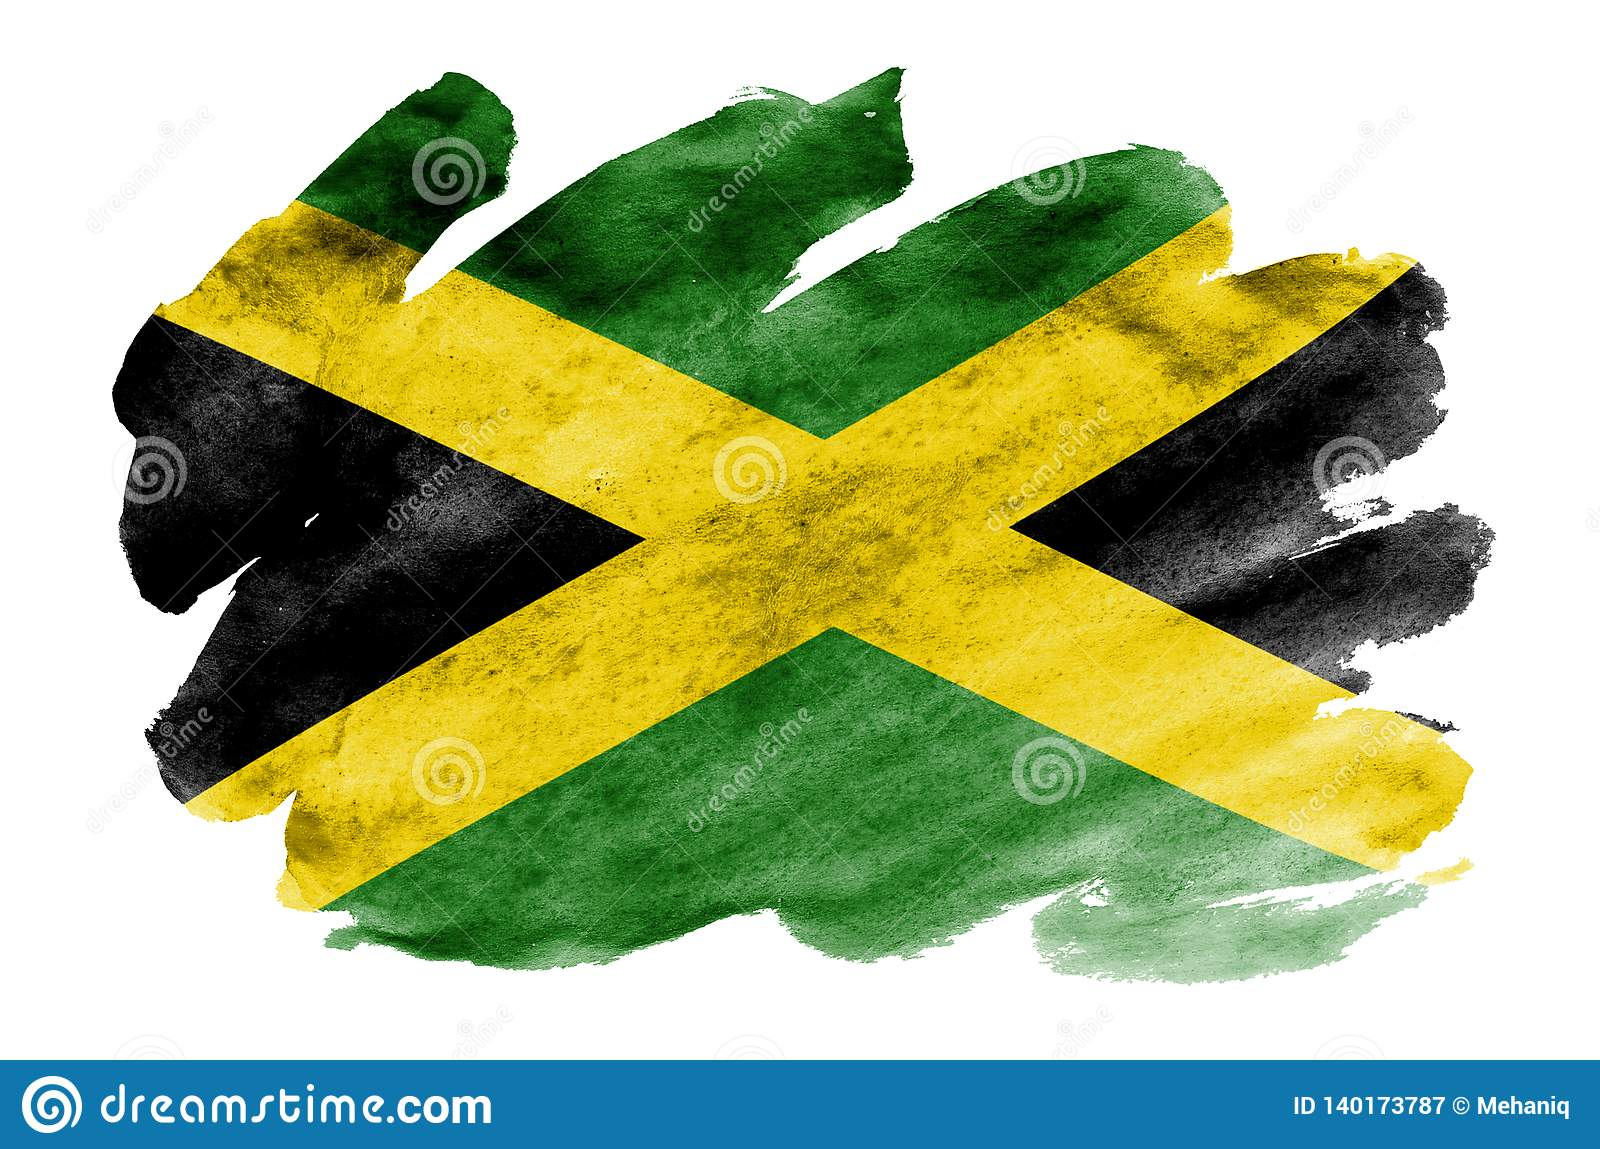 Jamaica Flag Is Depicted In Liquid Watercolor Style